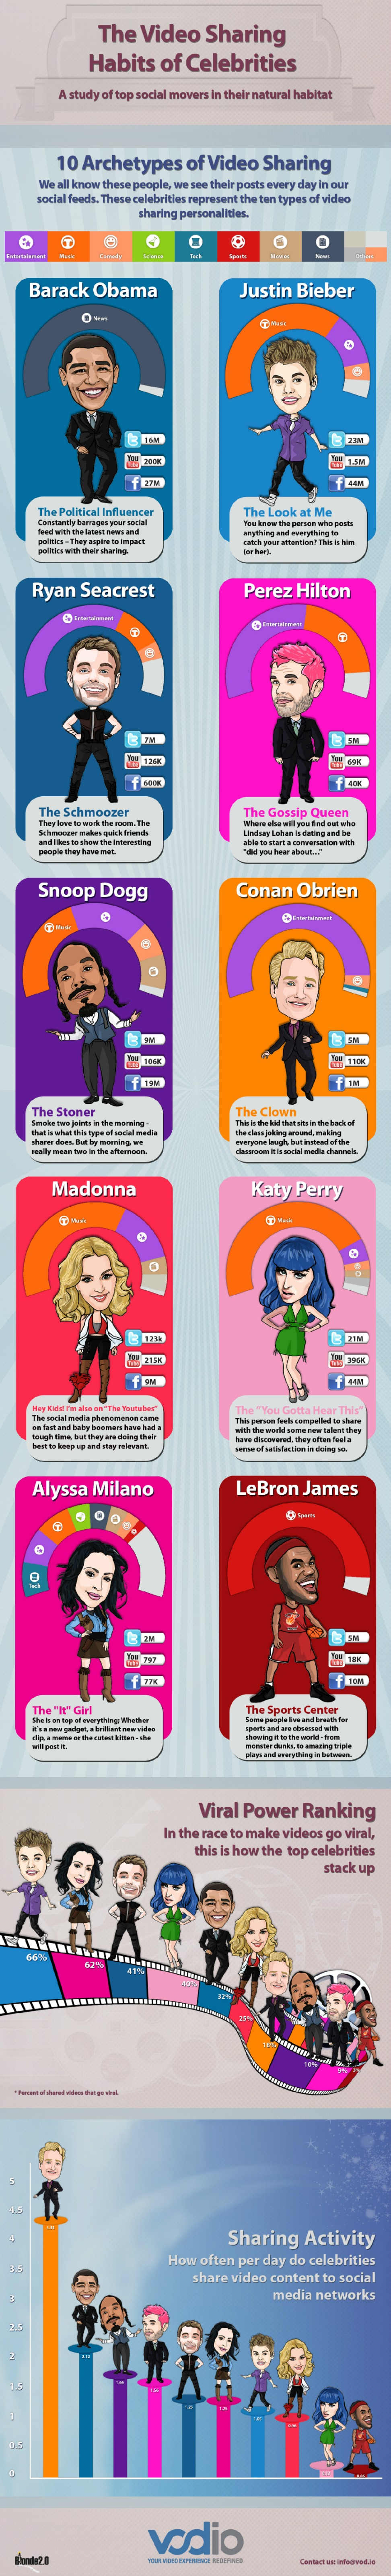 Online Presence of Celebrities